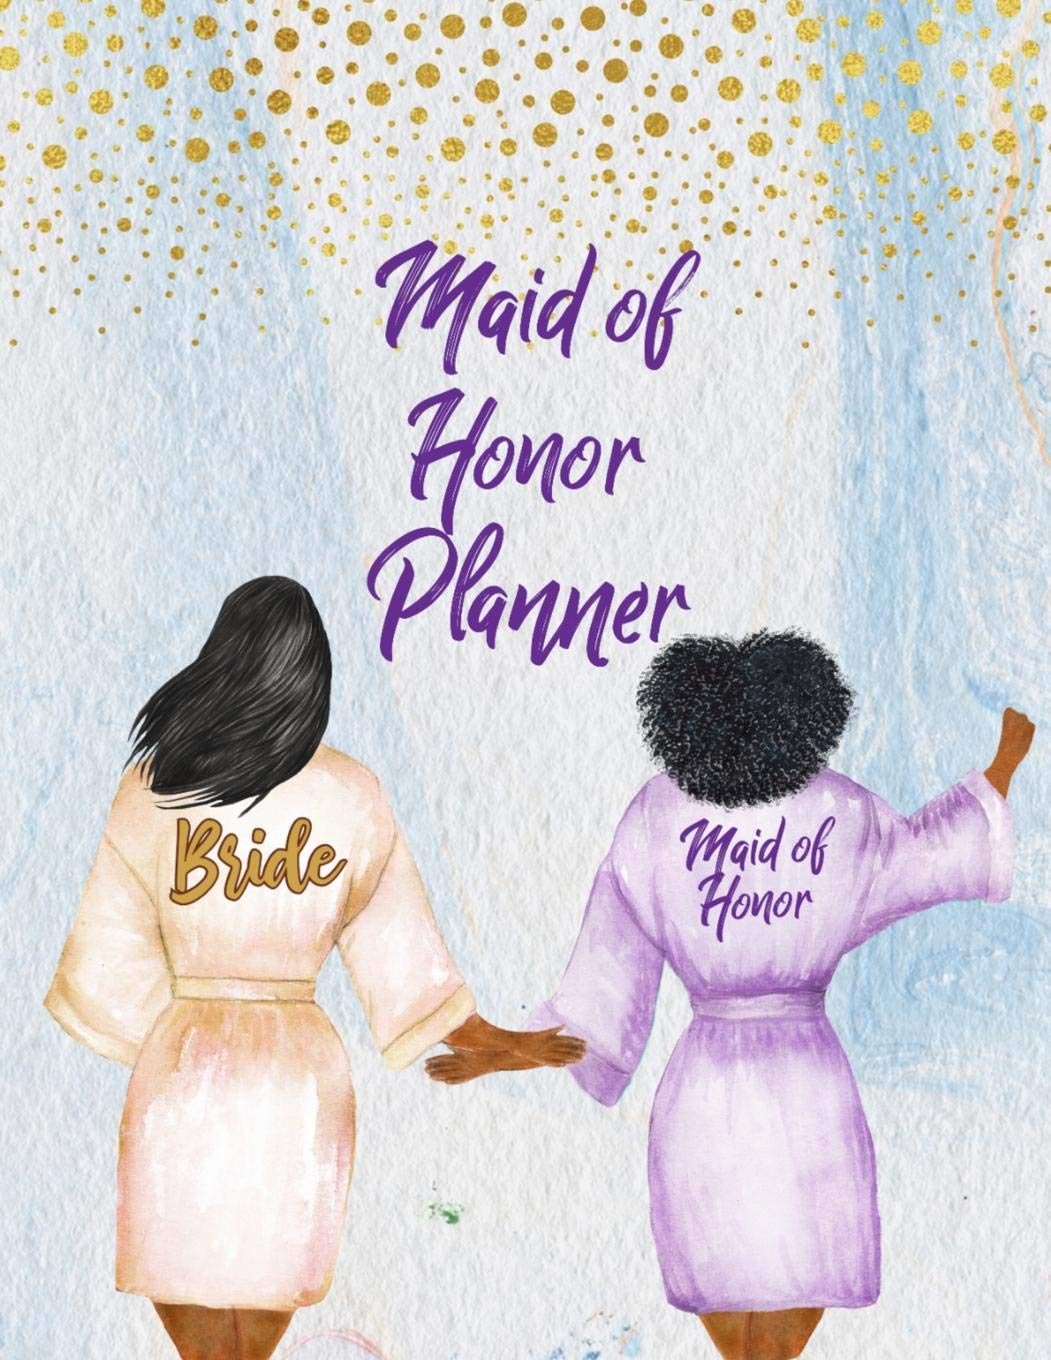 Amazon Com Maid Of Honor Planner Wedding Party Notebook And Task Tracker With Checklists For African American Brides Maid Of Honor Gift 9781081230579 Enchanted Wedding Press Books